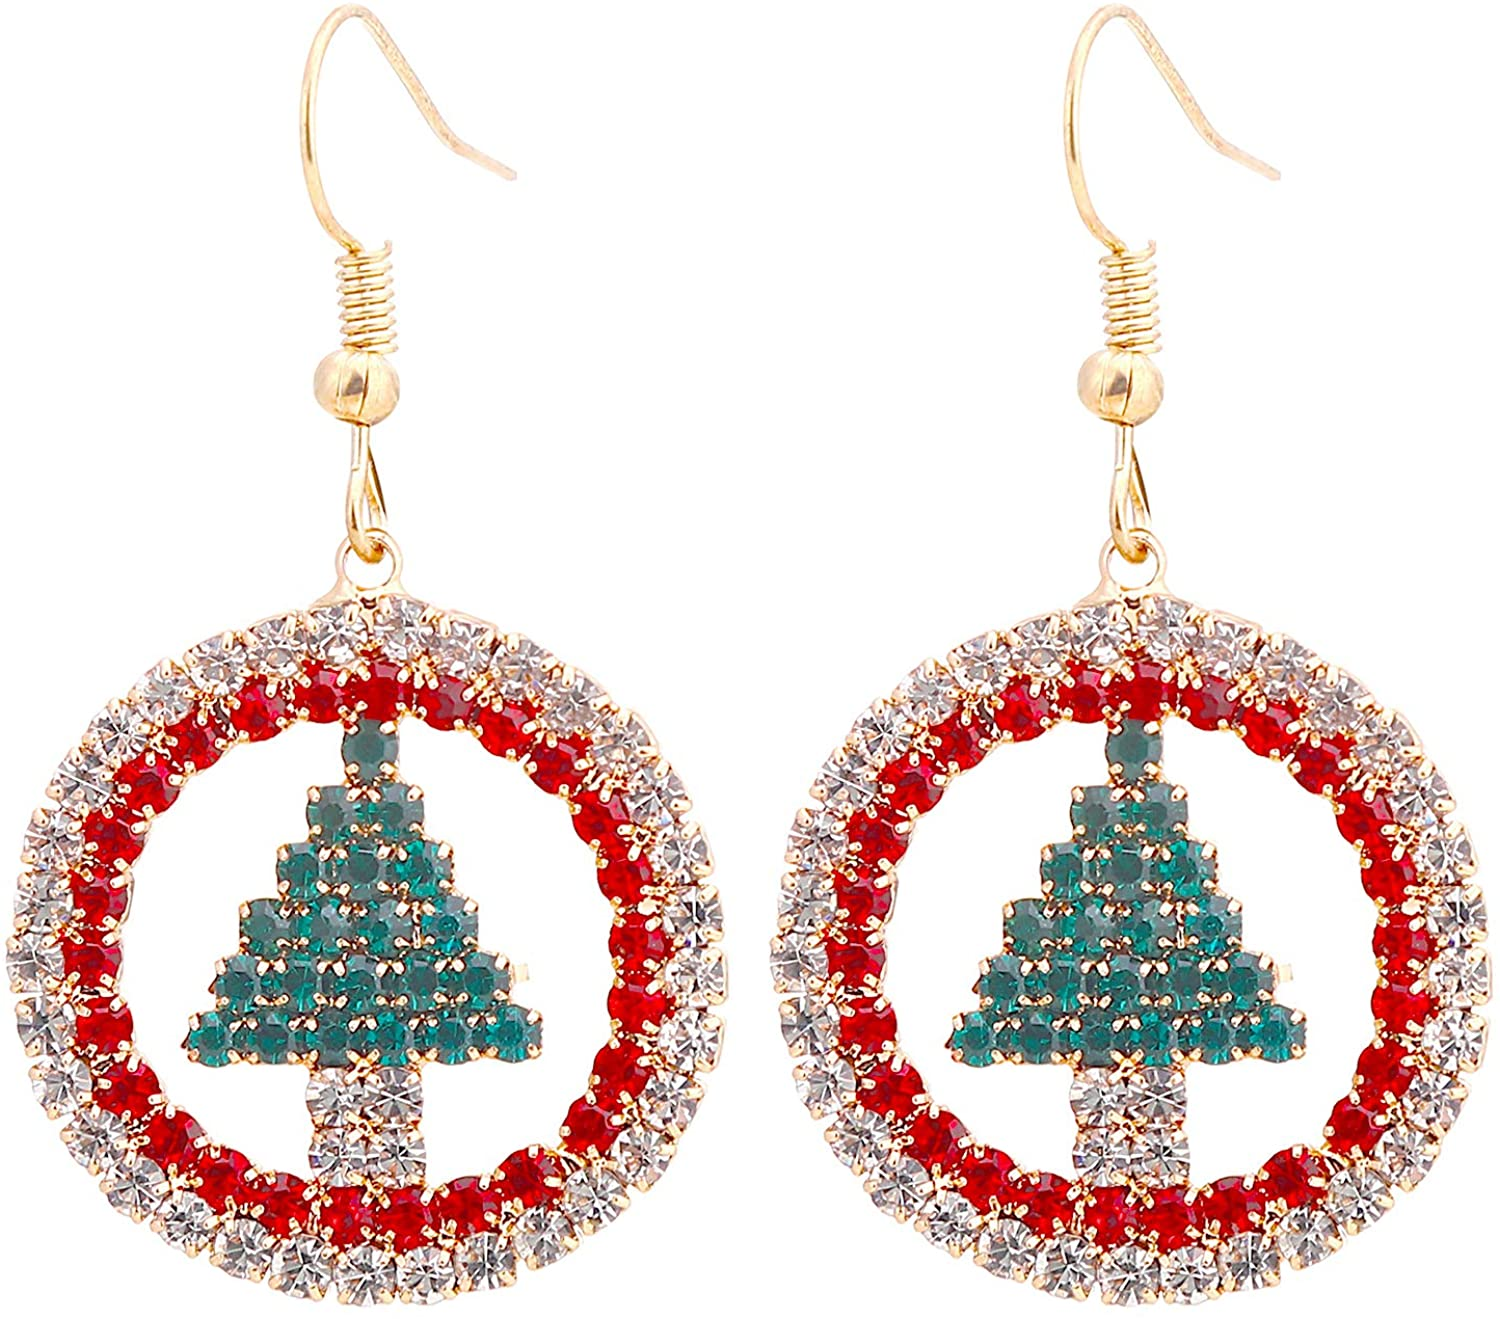 Unijew 2020 Fashion CZ Inlay Circular Christmas Tree Earrings for Women Girls, Celebration Decoration Dangle Earrings,be Made of Metals Rhine Stone Cup Chain, Dangle-earrings Christmas Gift for Women